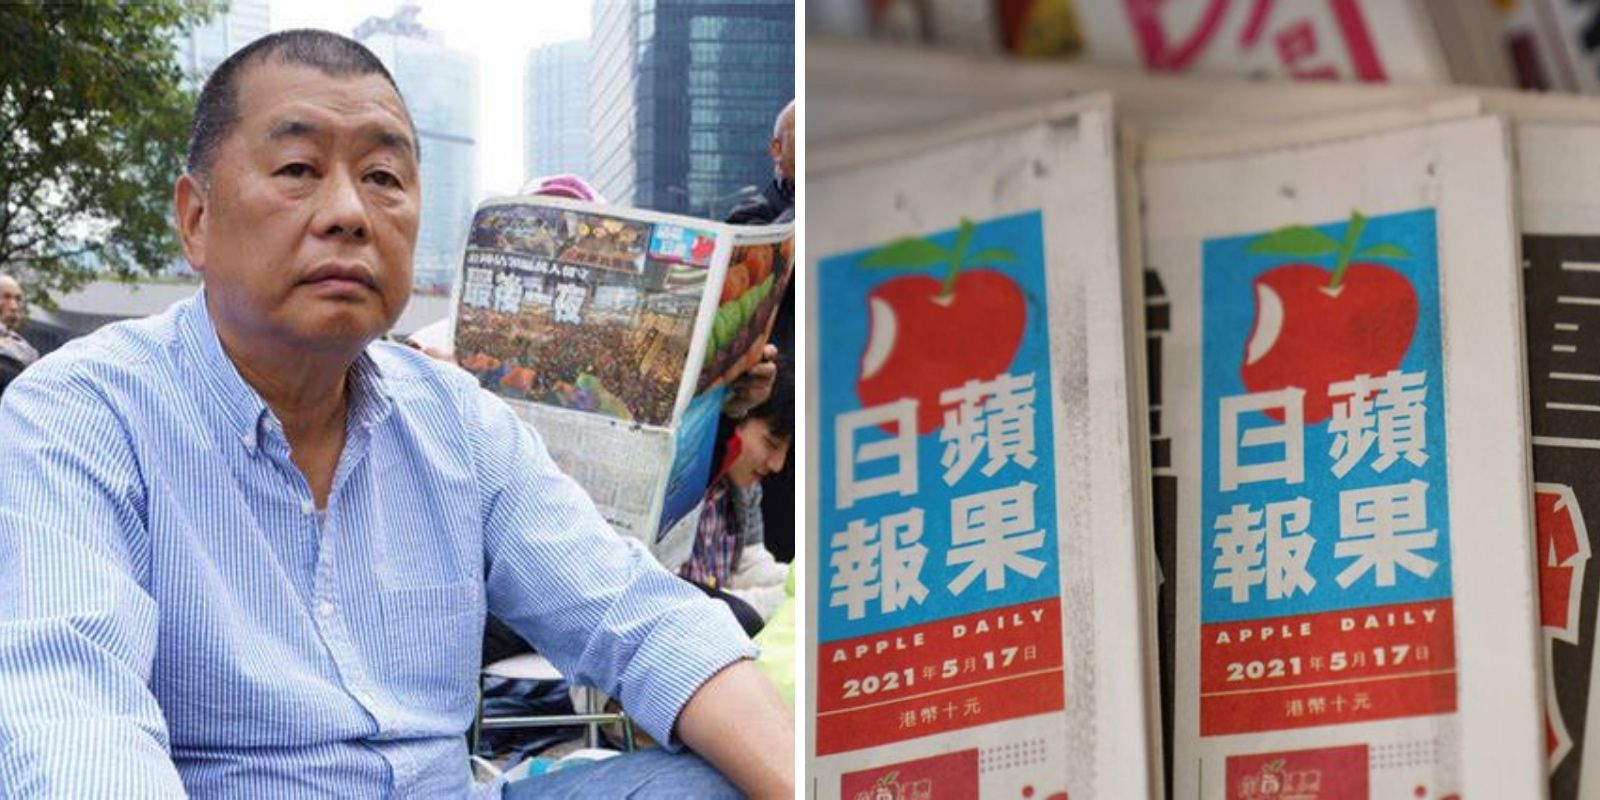 Hong Kong's last free newspaper goes silent under China's tough 'security laws'